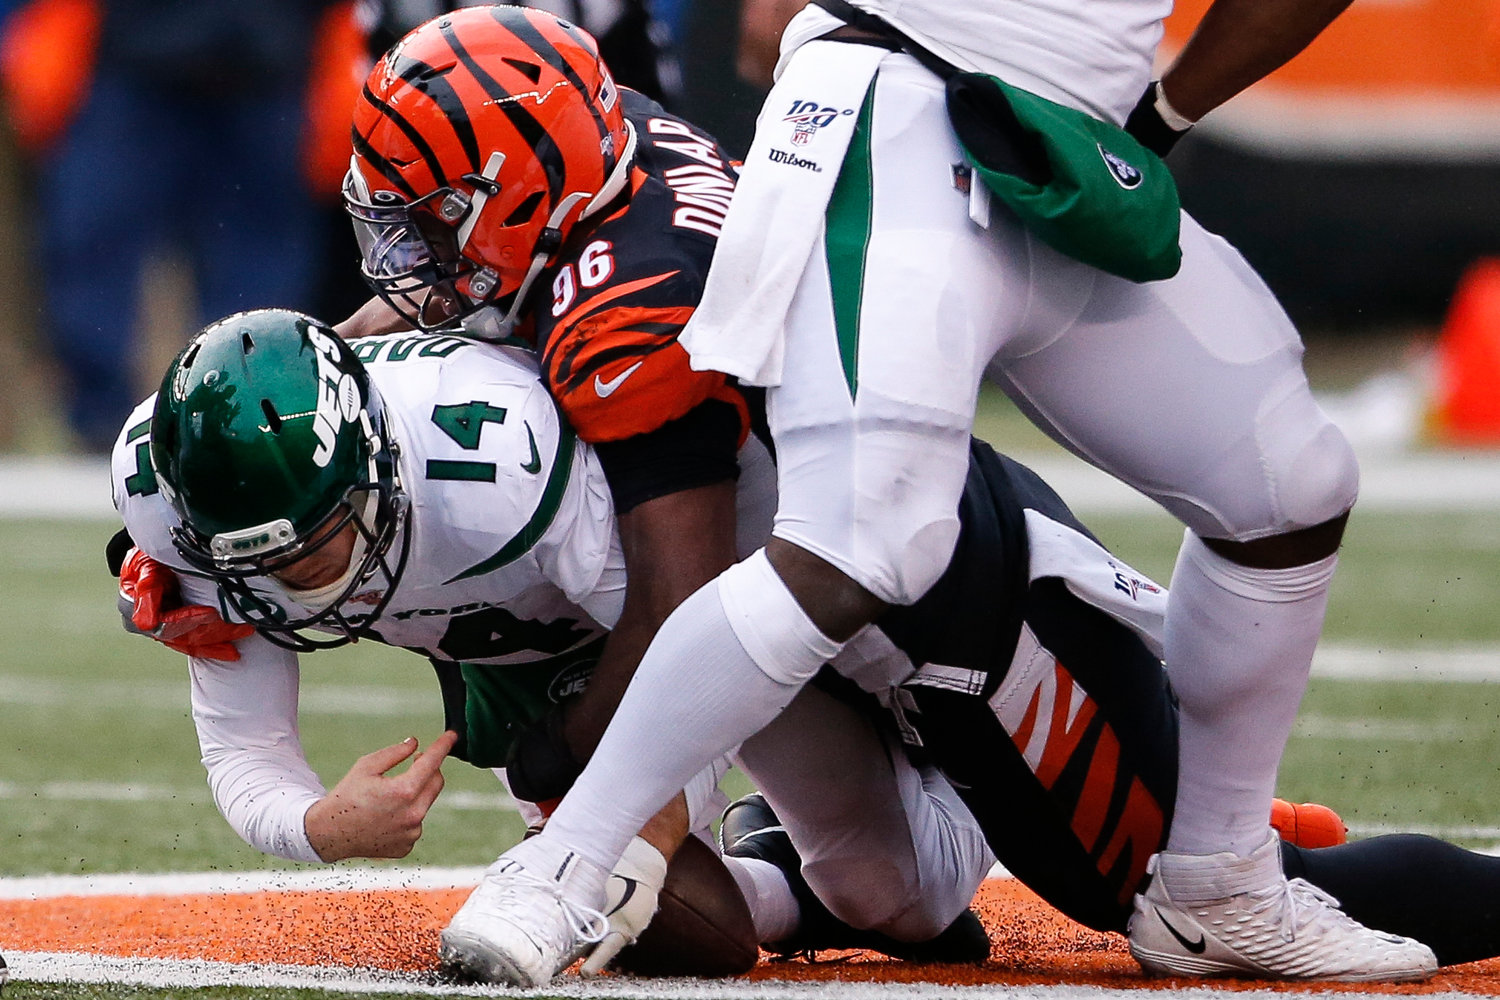 SACKED — Jets quarterback Sam Darnold is sacked by Bengals defensive end Carlos Dunlap during the second half of an NFL game on Sunday in Cincinnati. The Jets lost 22-6.